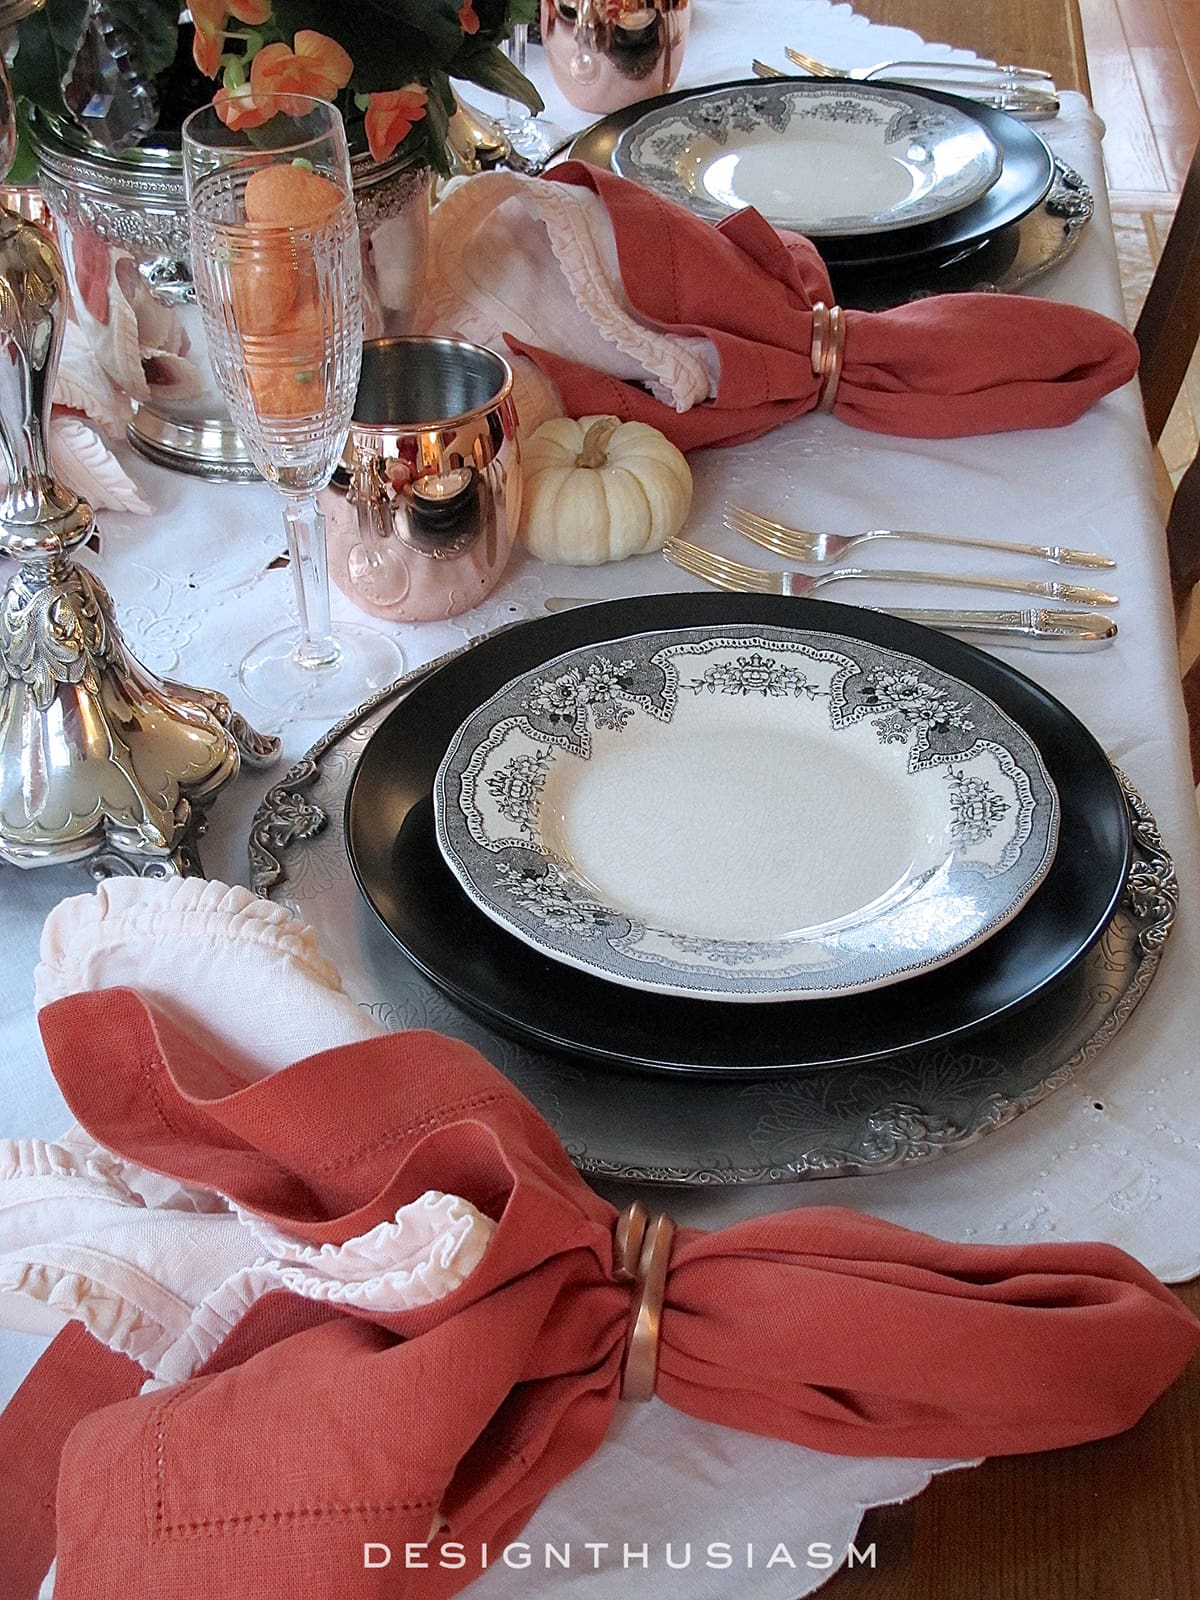 seasonal-tablescaping-with-designthusiasm-10